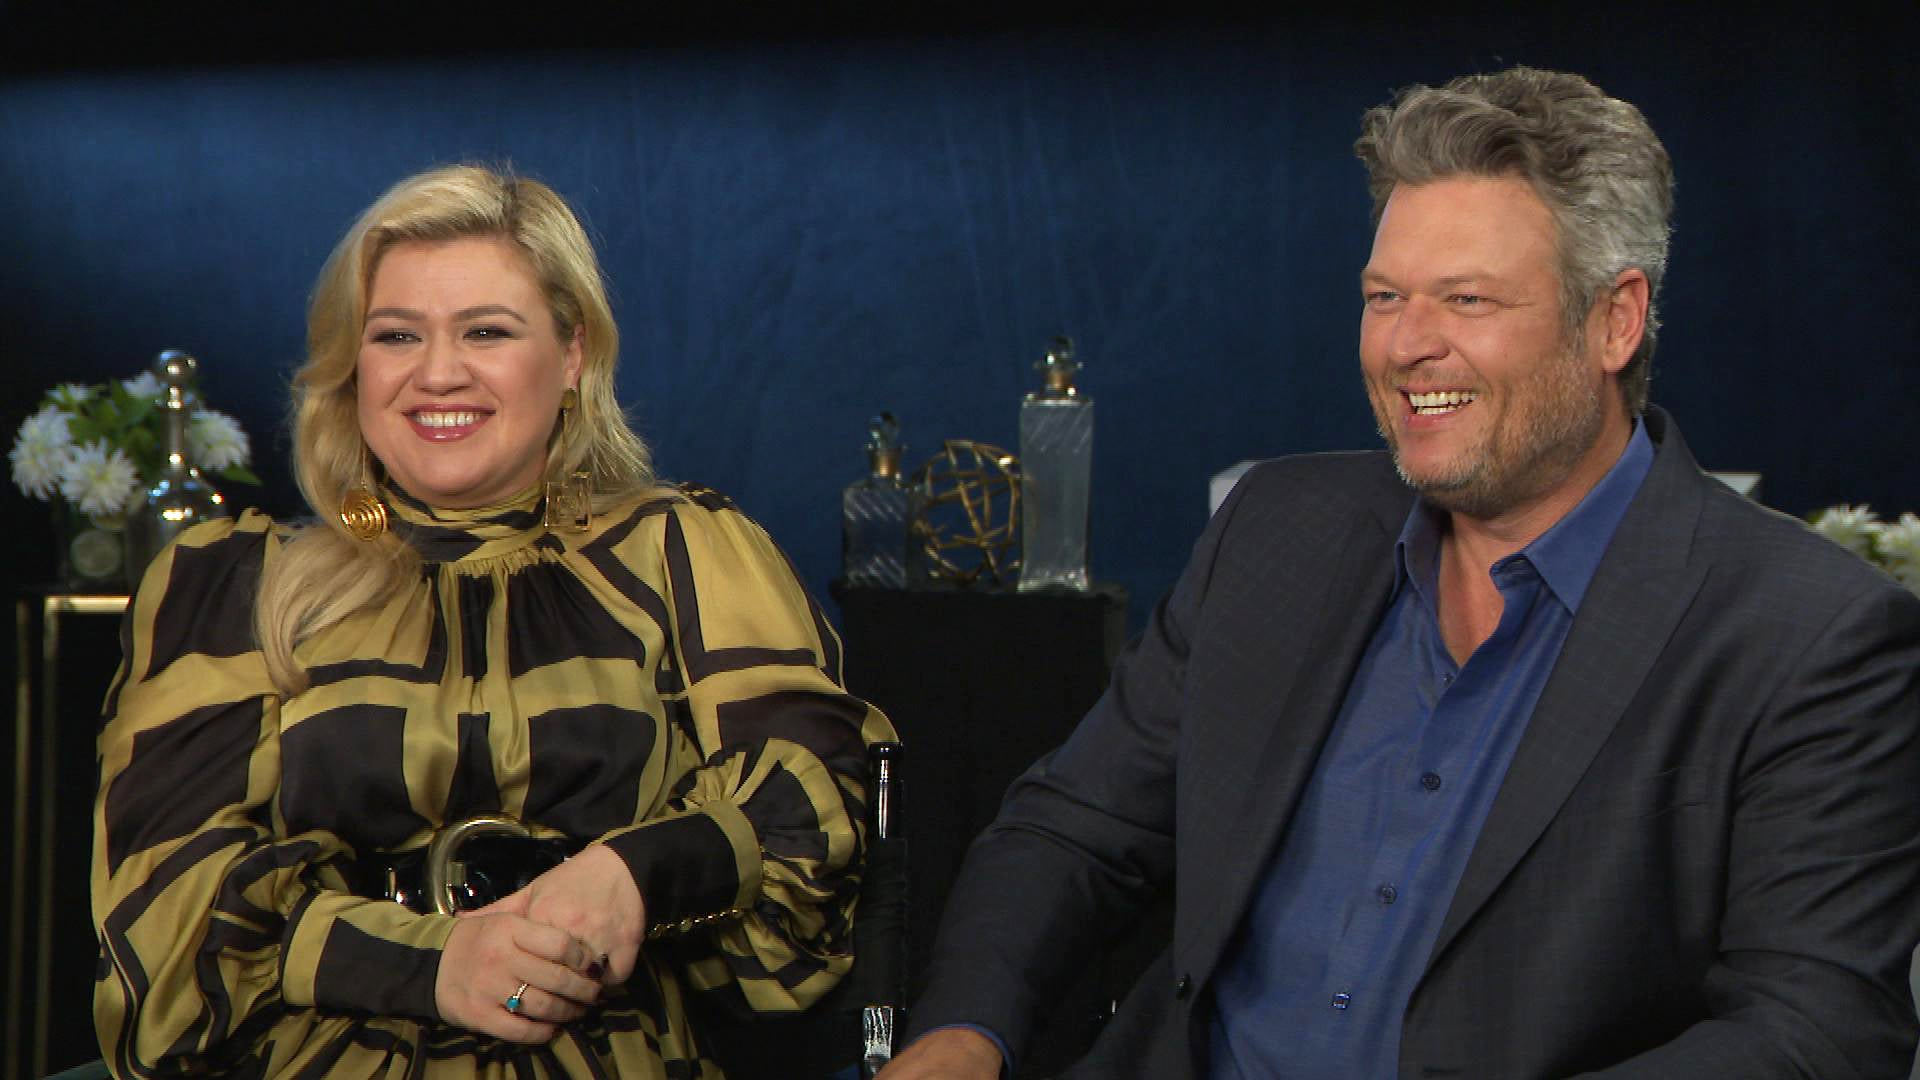 Blake Shelton and Kelly Clarkson Reveal Why Taylor Swift Is Such a Great Mentor on 'The Voice' (Exclusive)